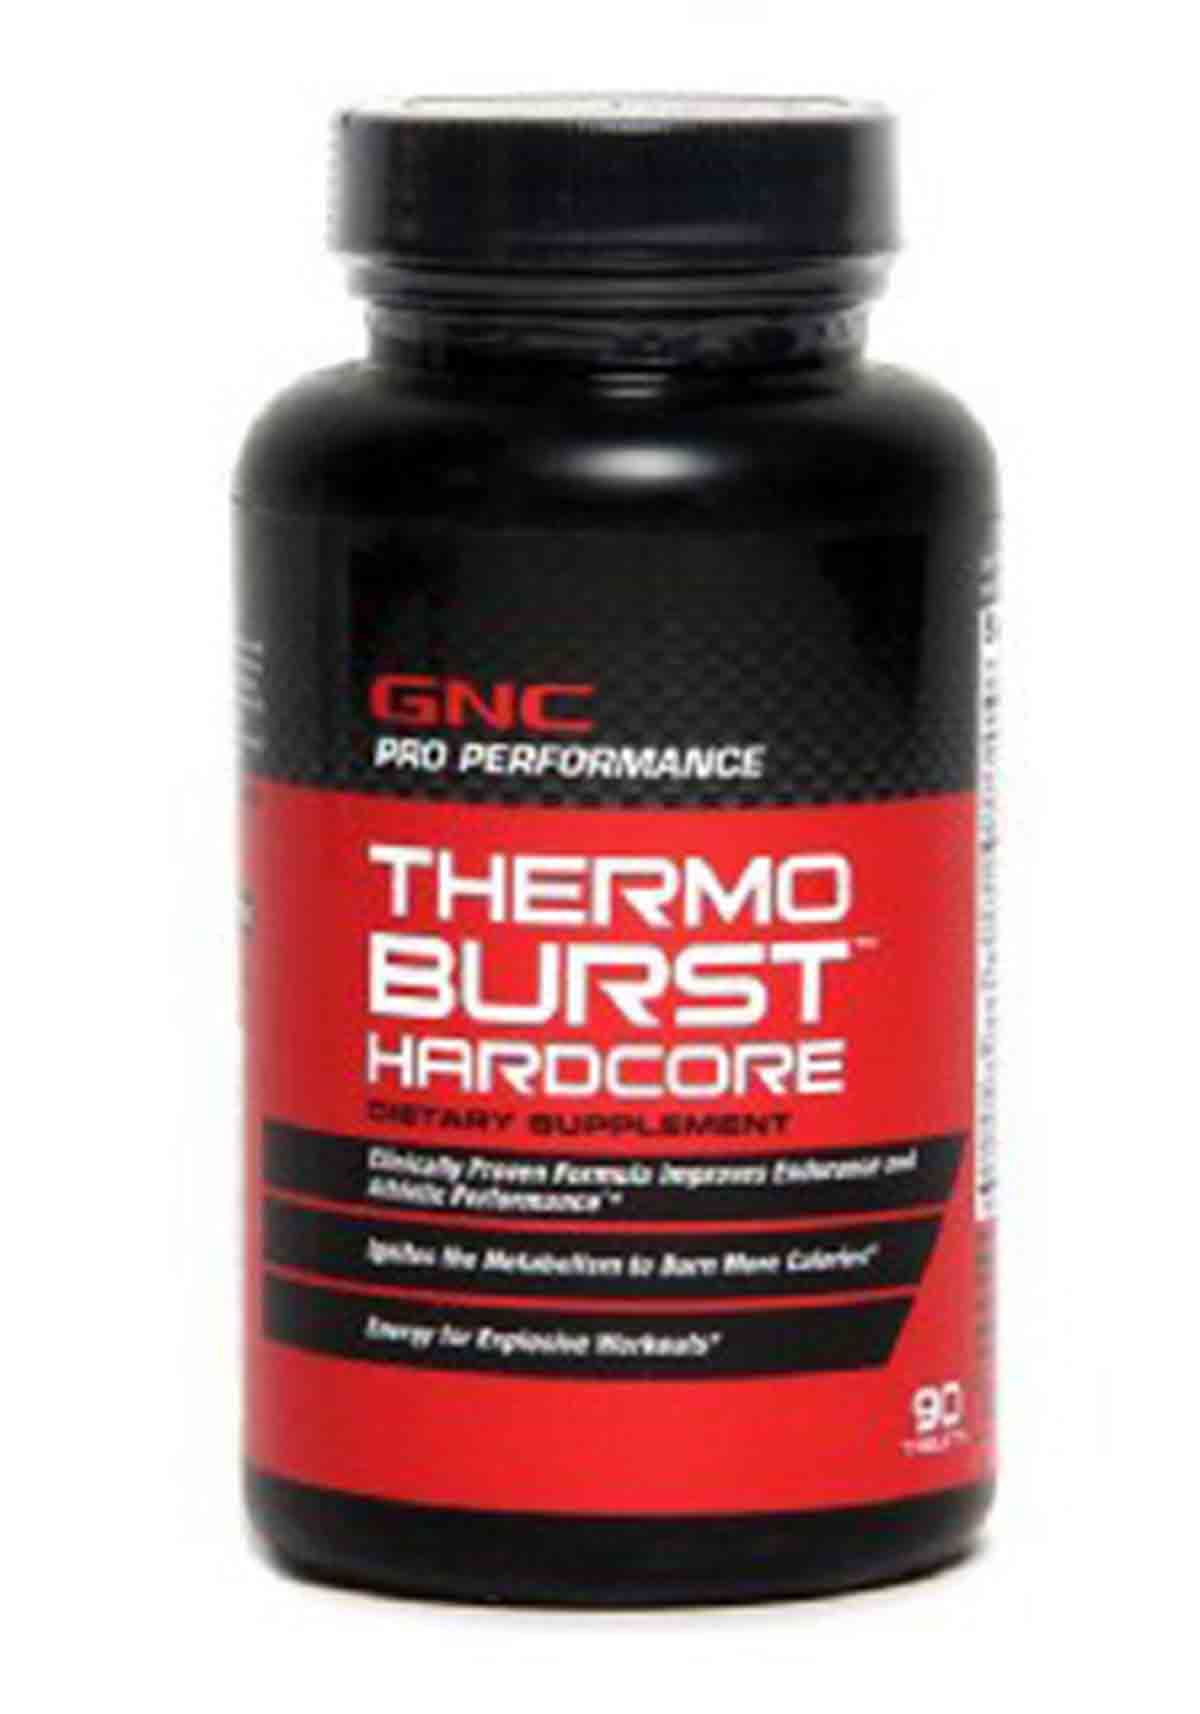 Thermo Burst Hardcore